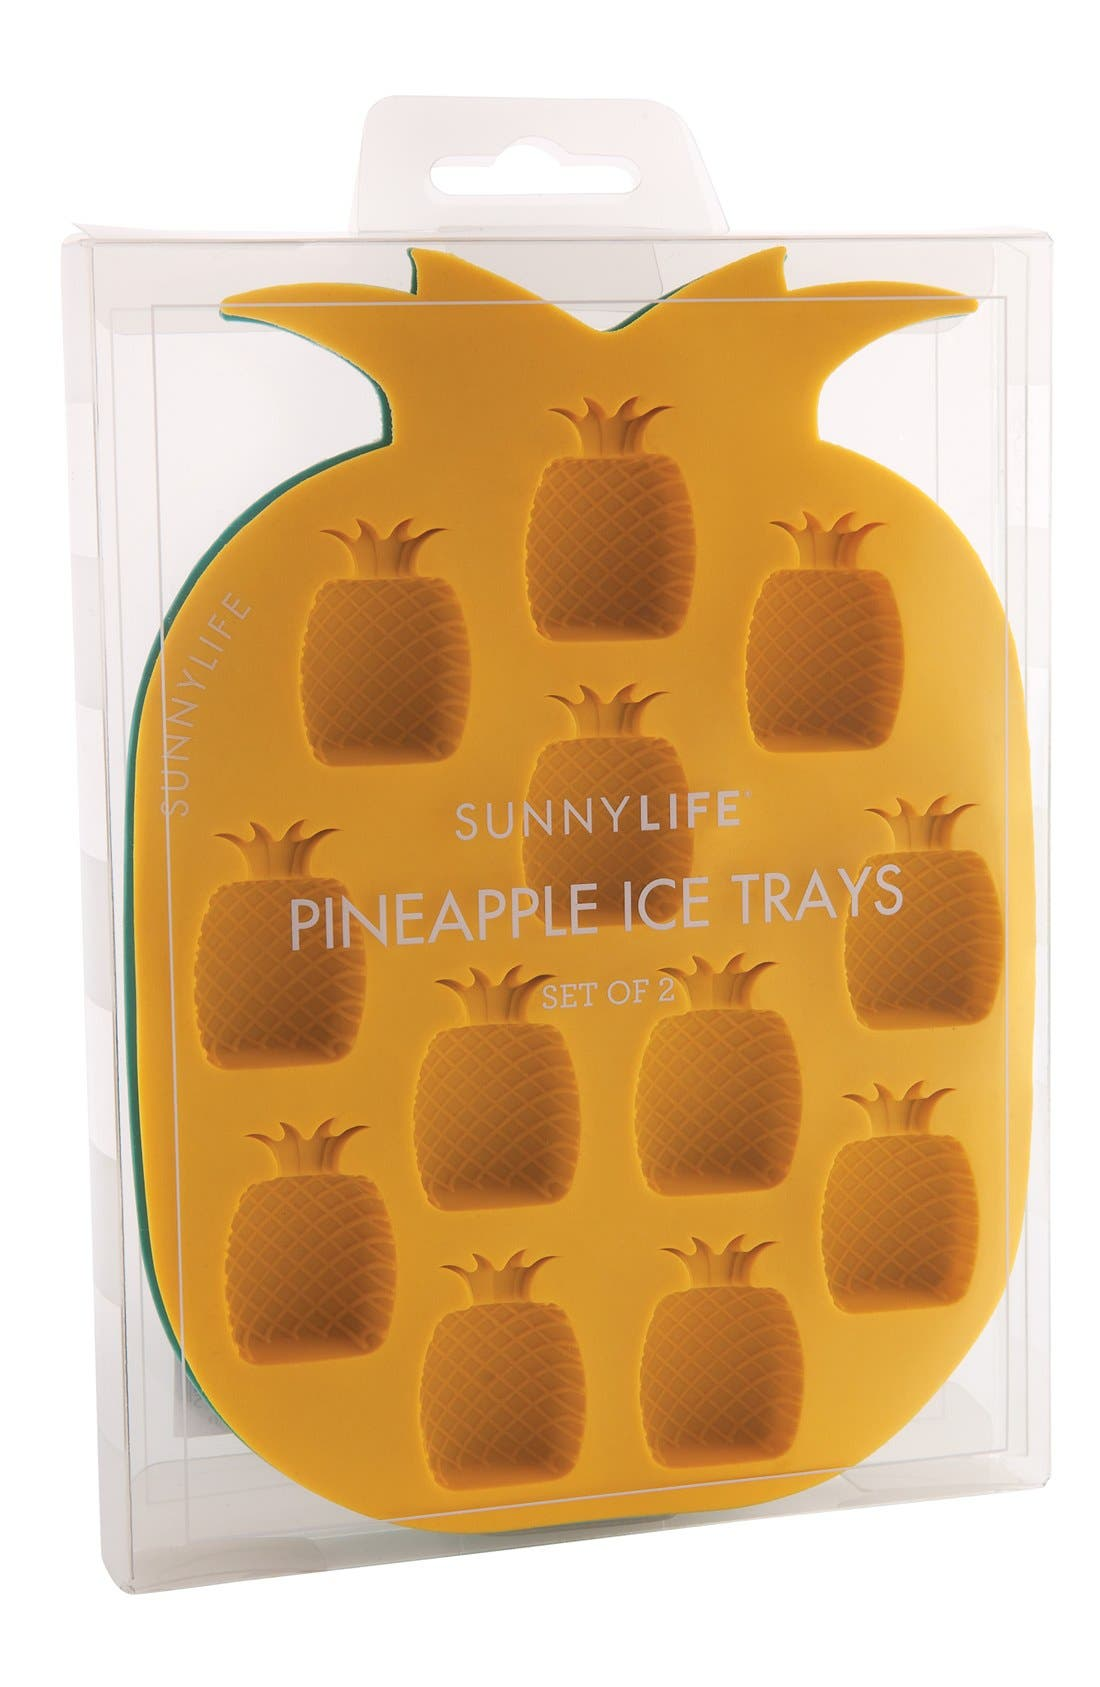 SUNNYLIFE, Pineapple Ice Cube Tray, Alternate thumbnail 3, color, 440